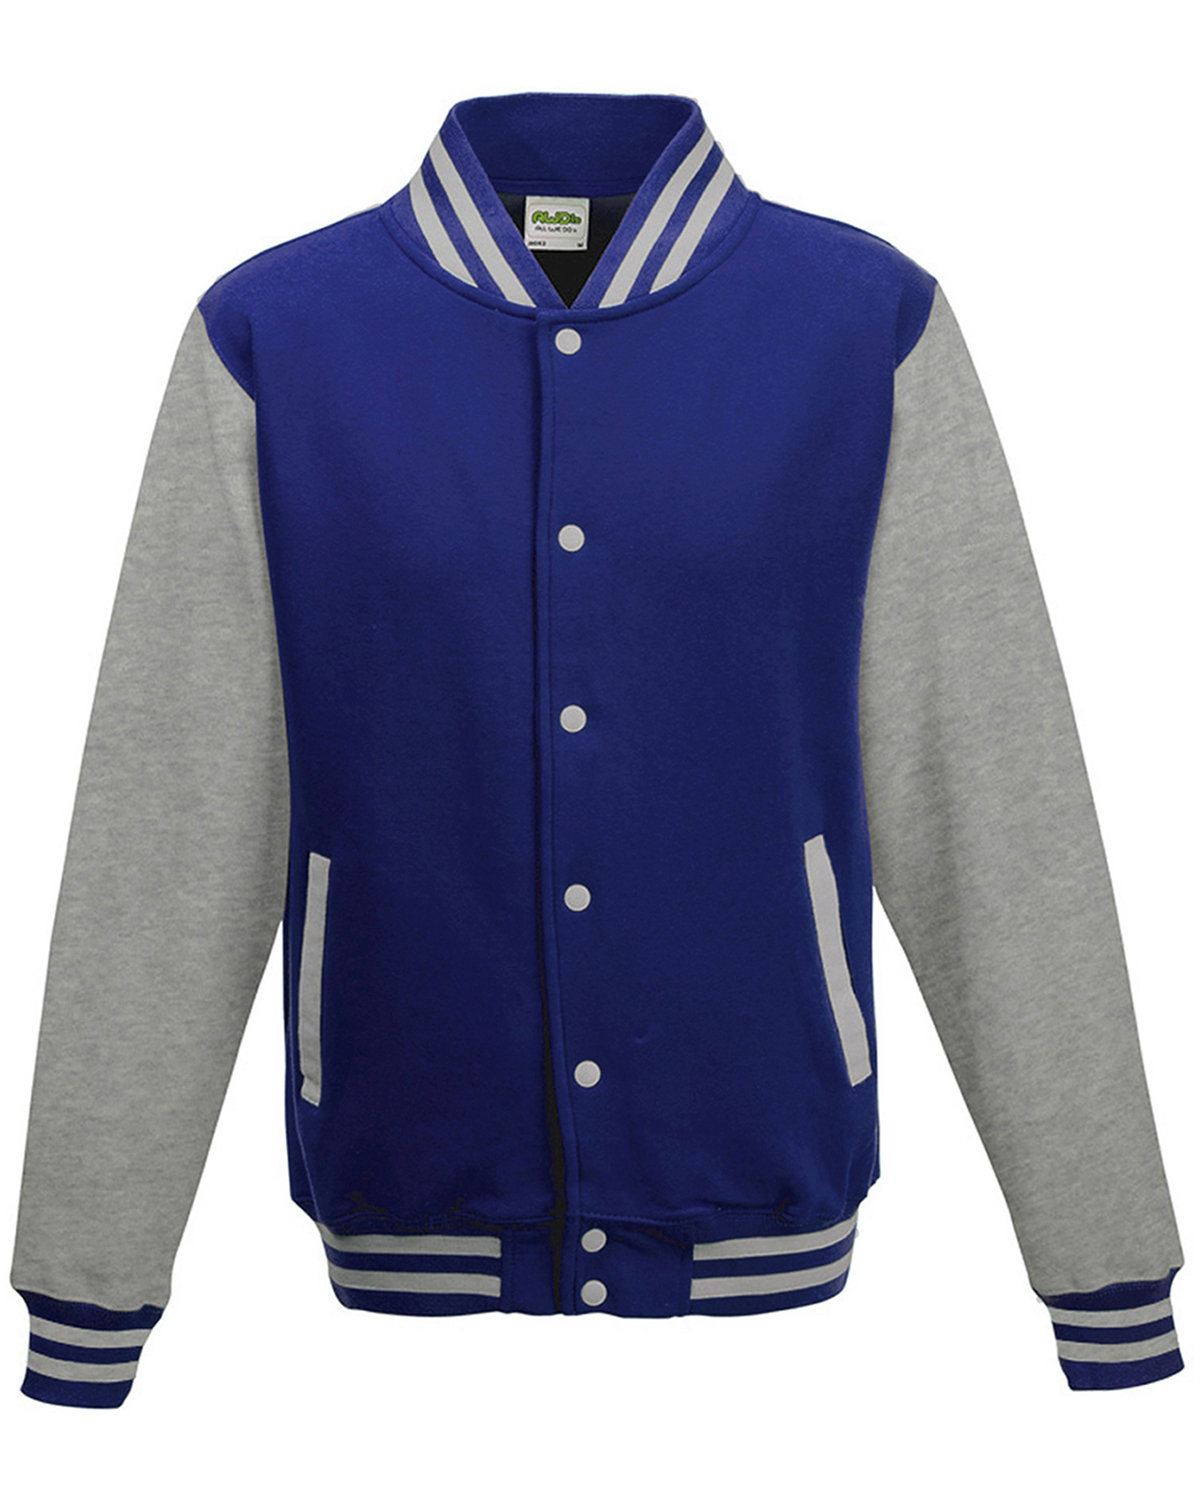 Just Hoods By AWDis Youth 80/20 Heavyweight Letterman Jacket ROYL BL/ HTH GRY